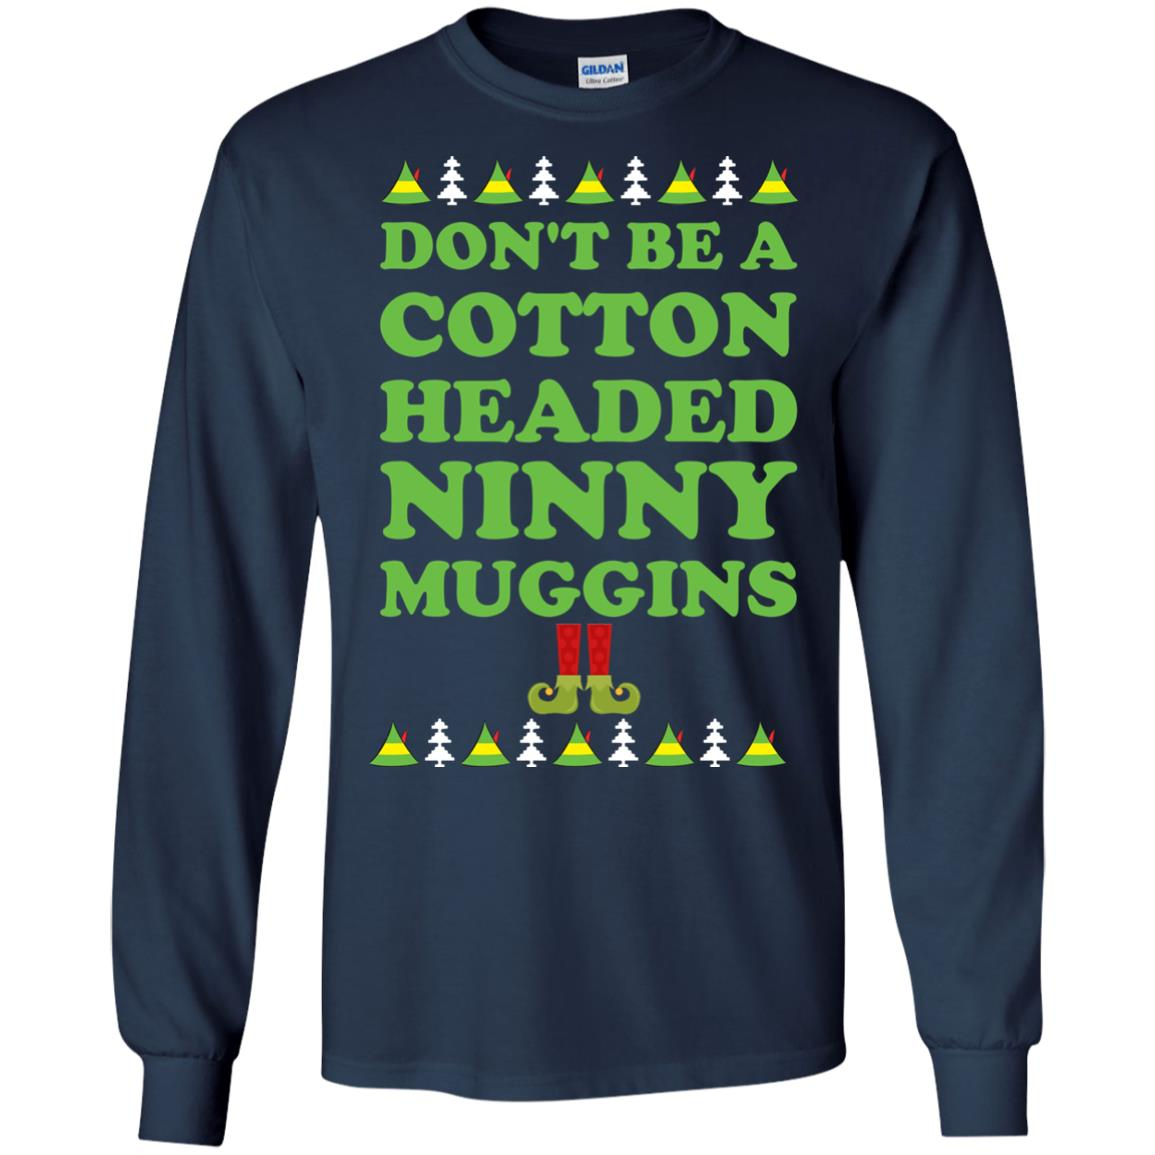 image 2795 - Elf Don't Be a Cotton Headed Ninny Muggins Christmas Sweater, Hoodie